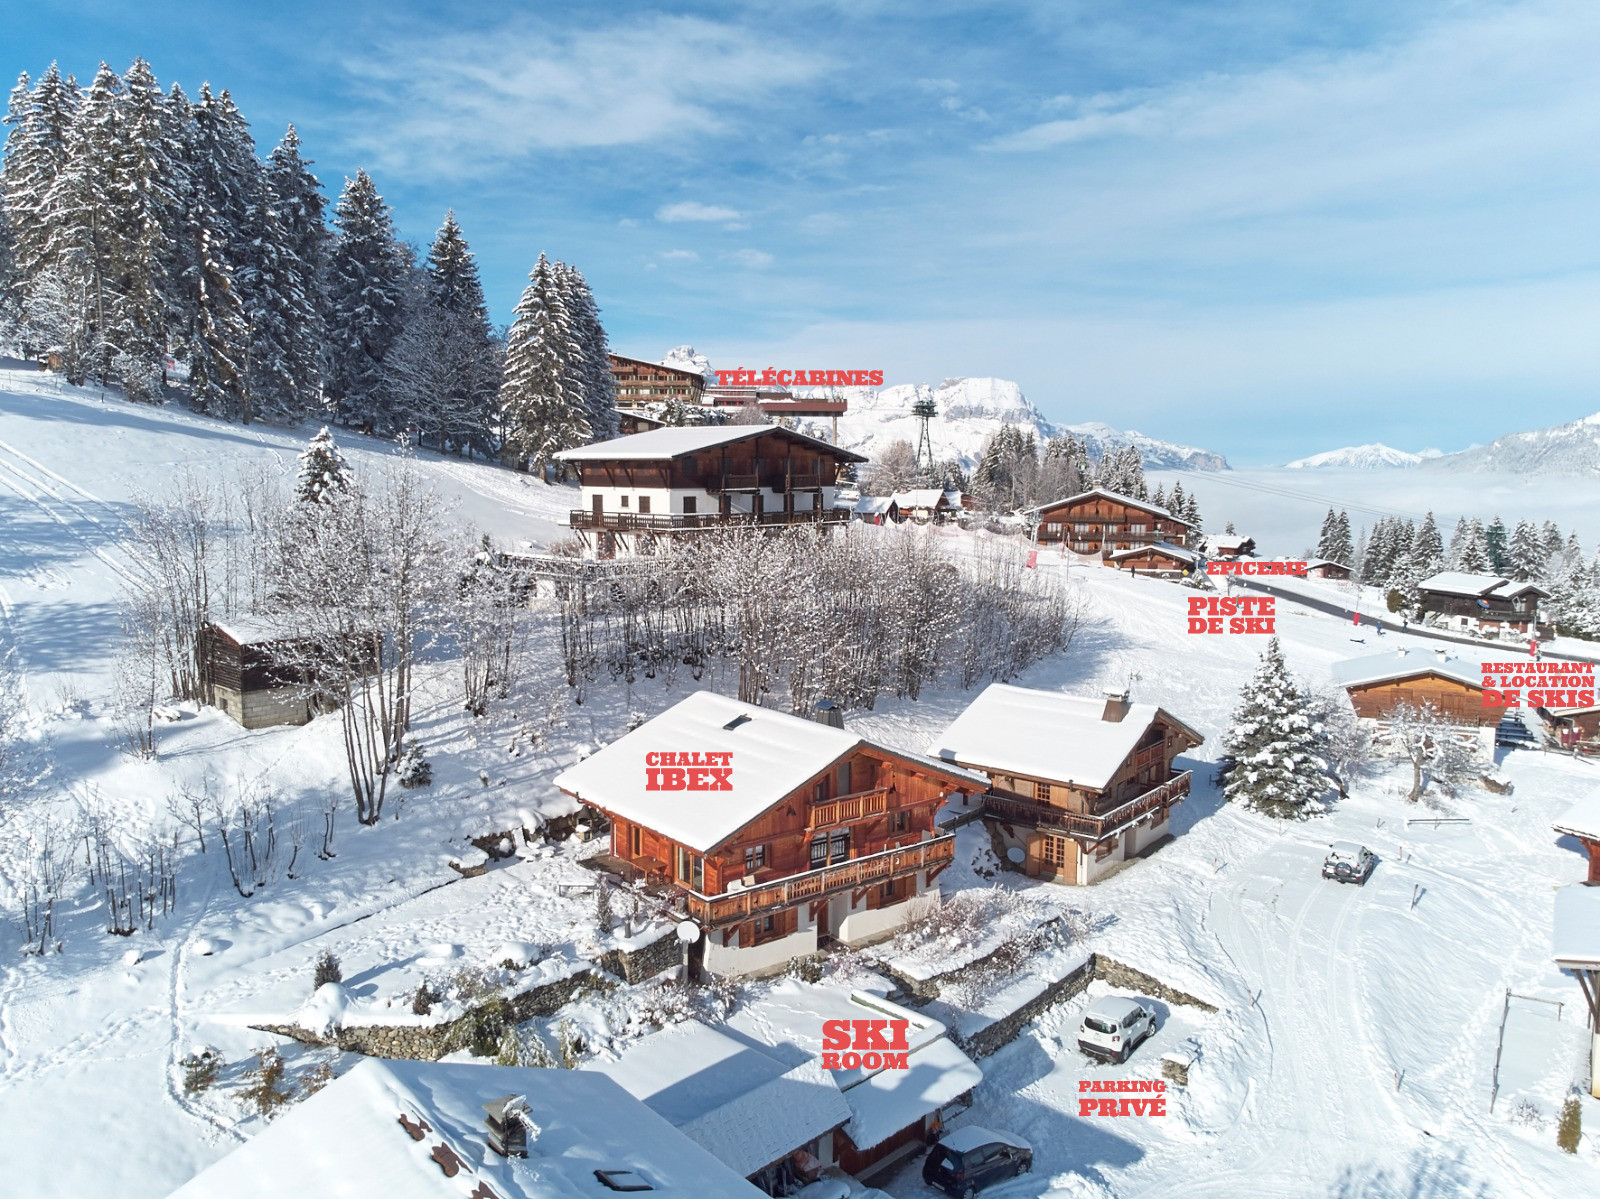 Chalet Ibex - View form above